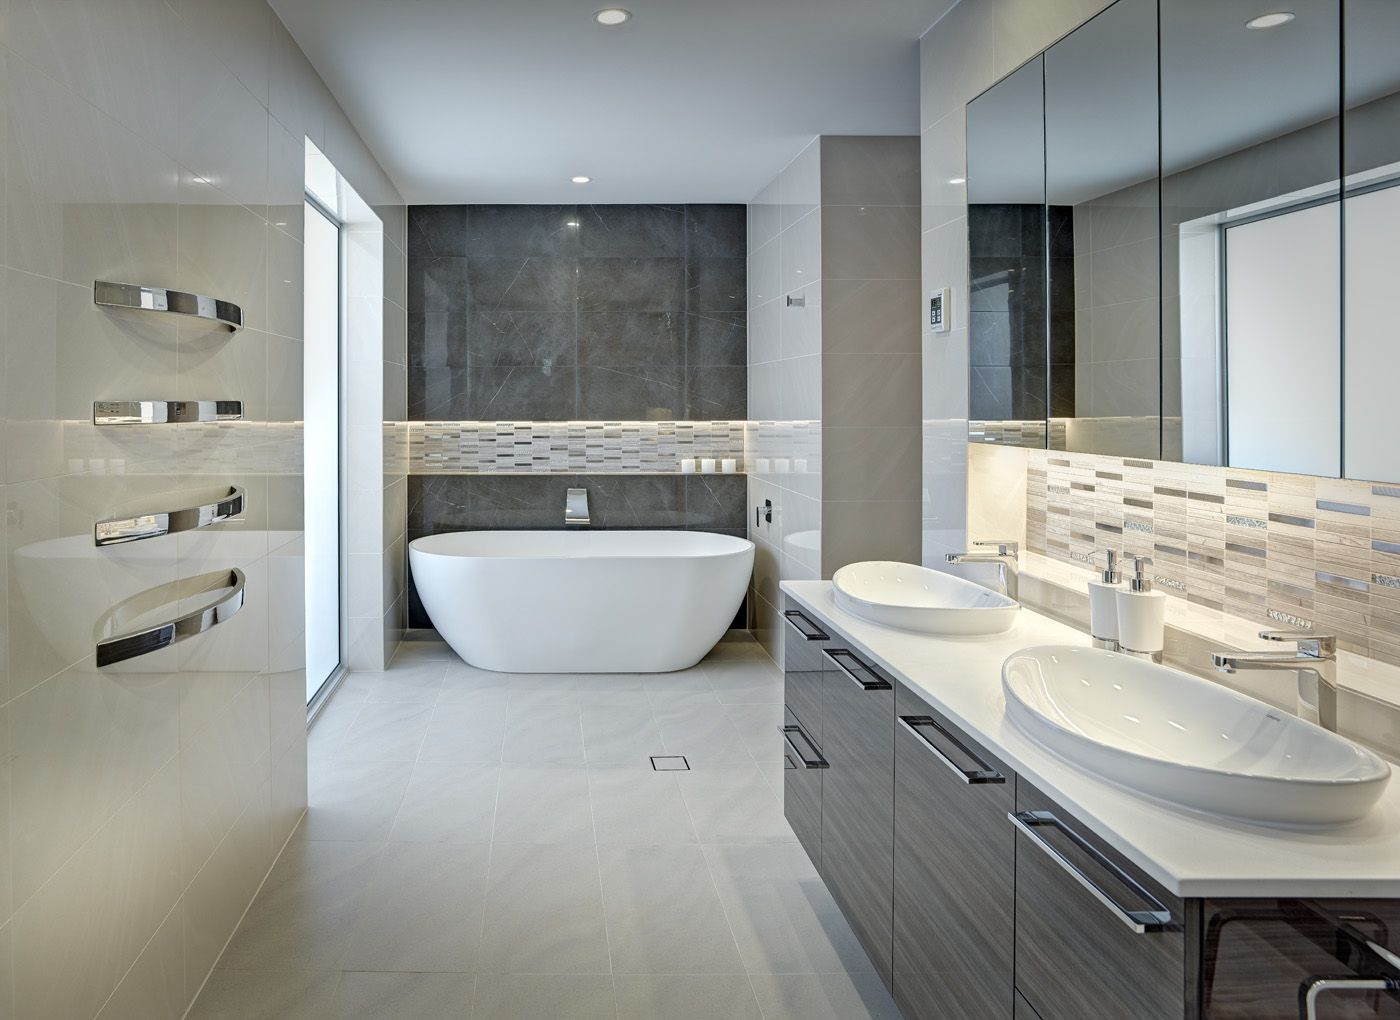 Photo Image Caesarstone Calacatta Nuvo looks great in bathrooms too Caesarstone Colors Calacatta Nuvo Pinterest Calacatta Kitchen layout design and Kitchen